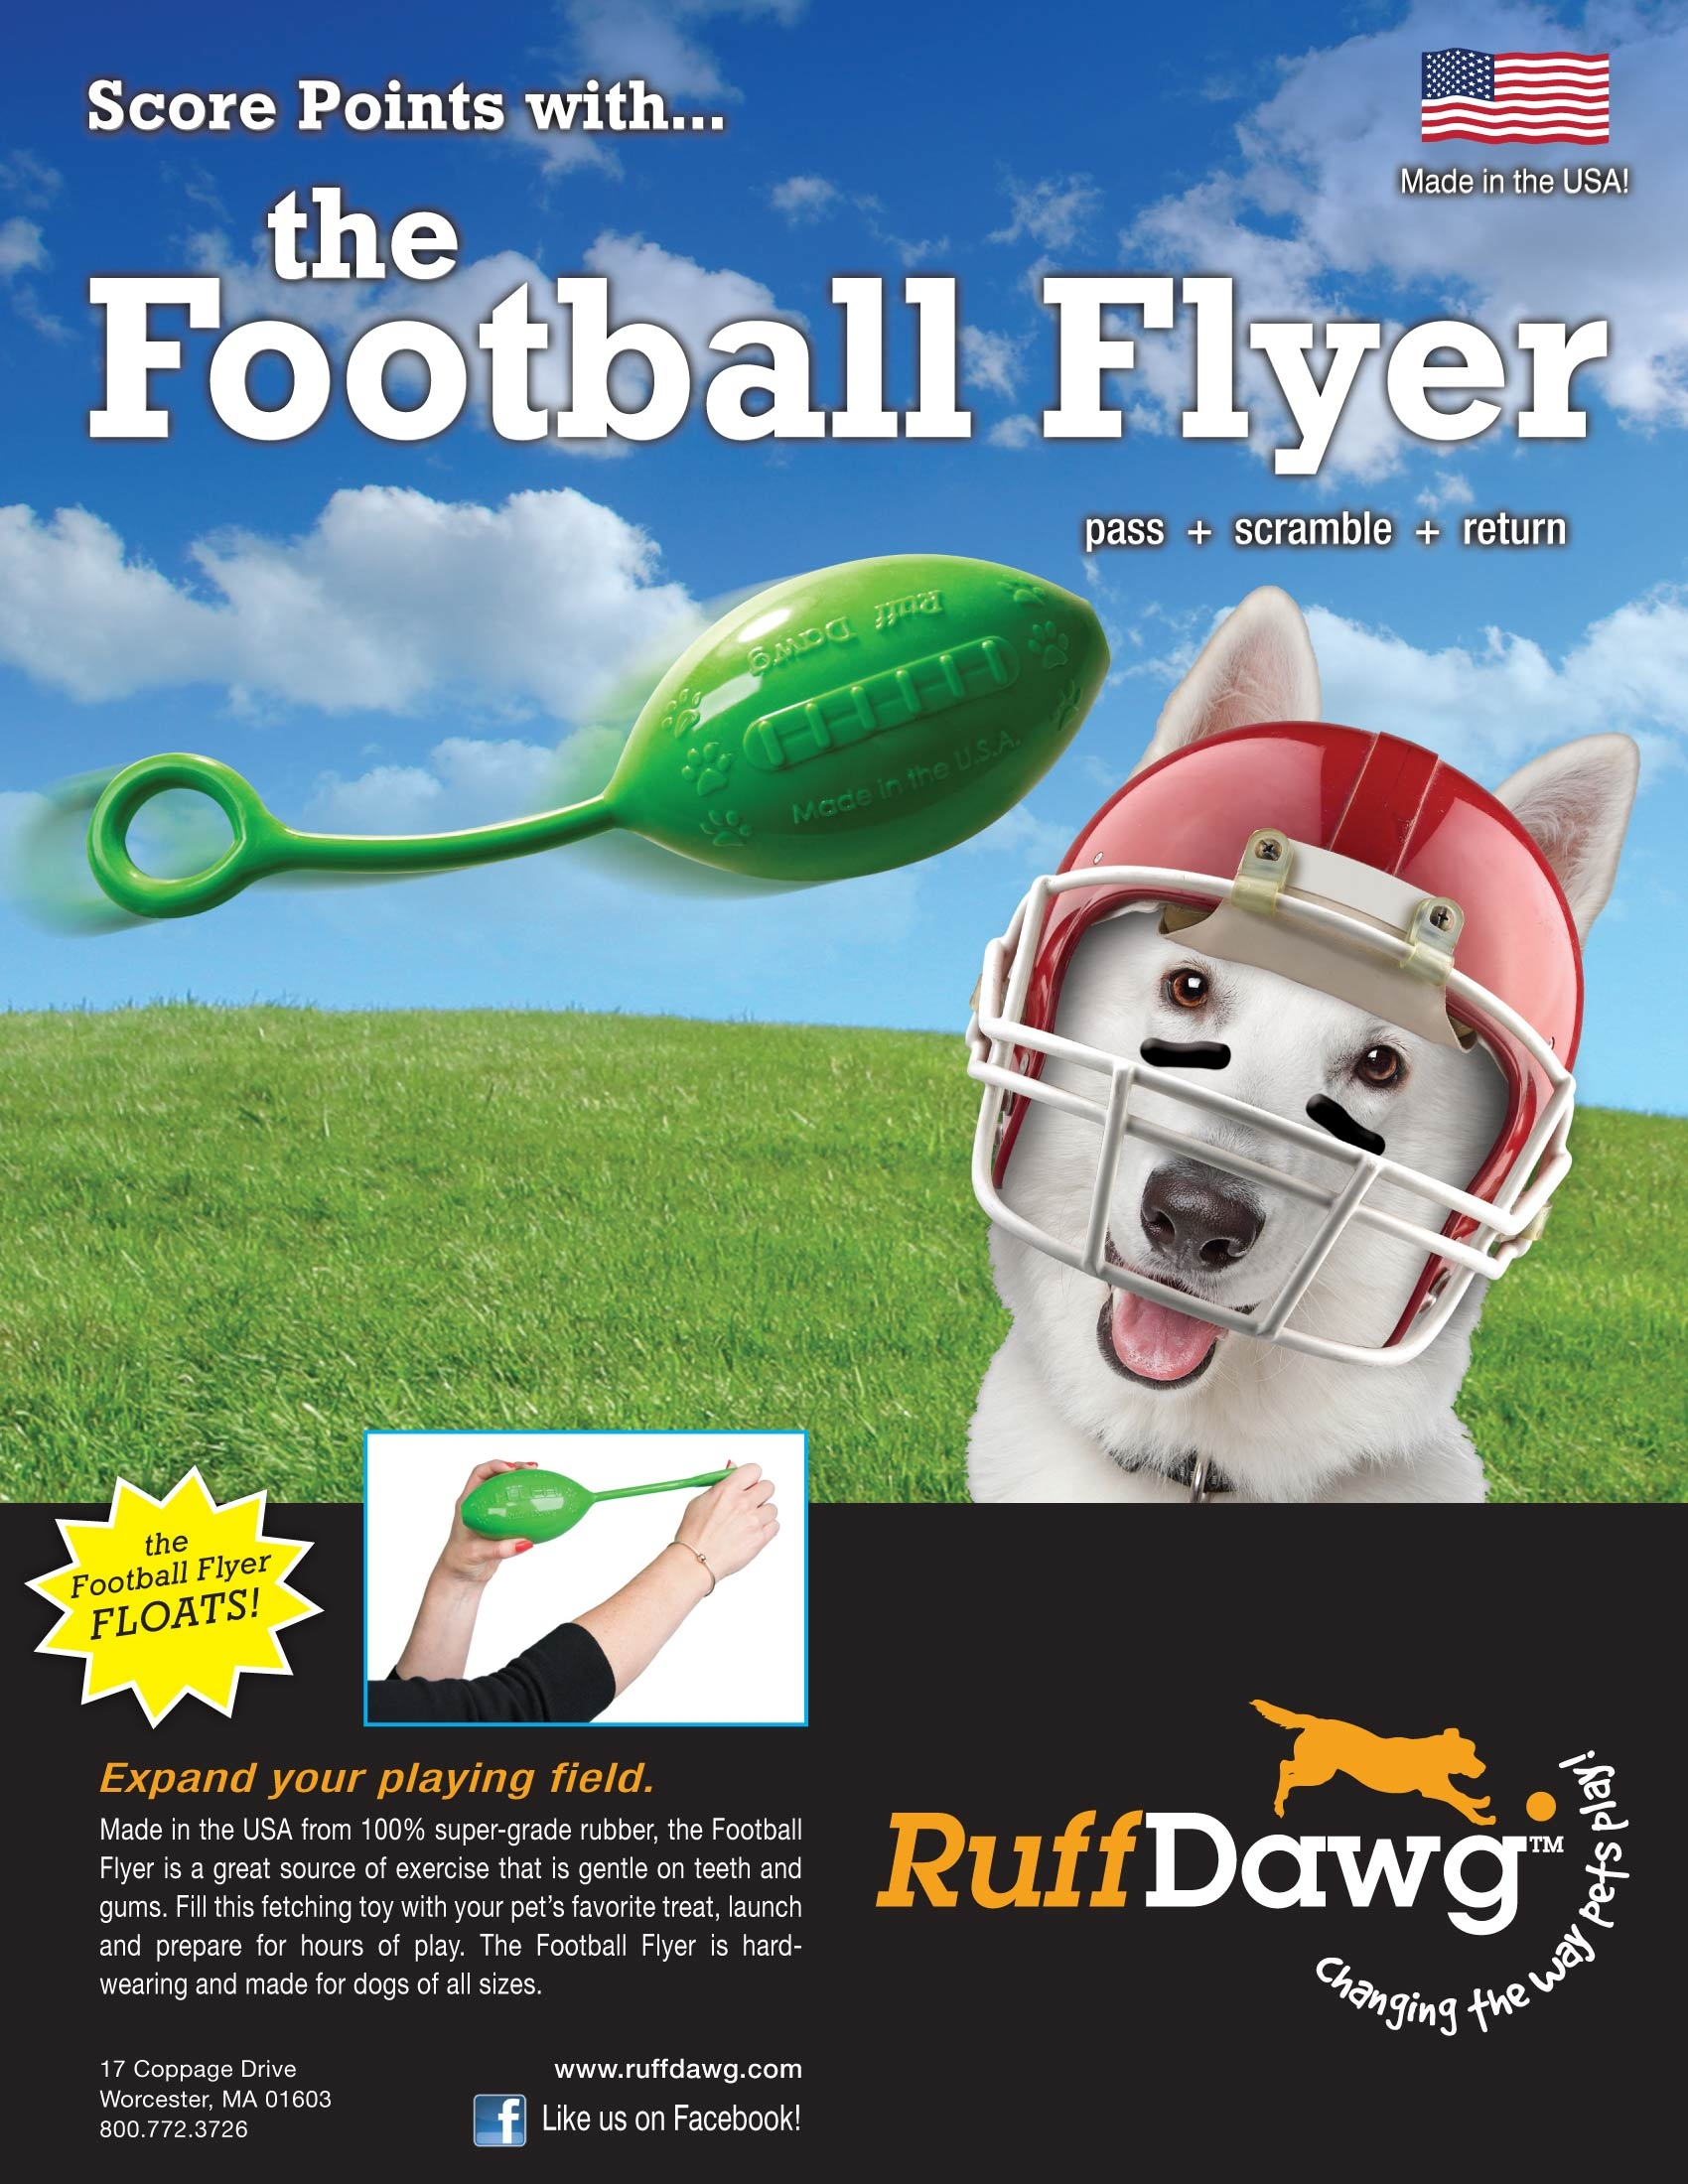 Football Flyer Sell Sheet